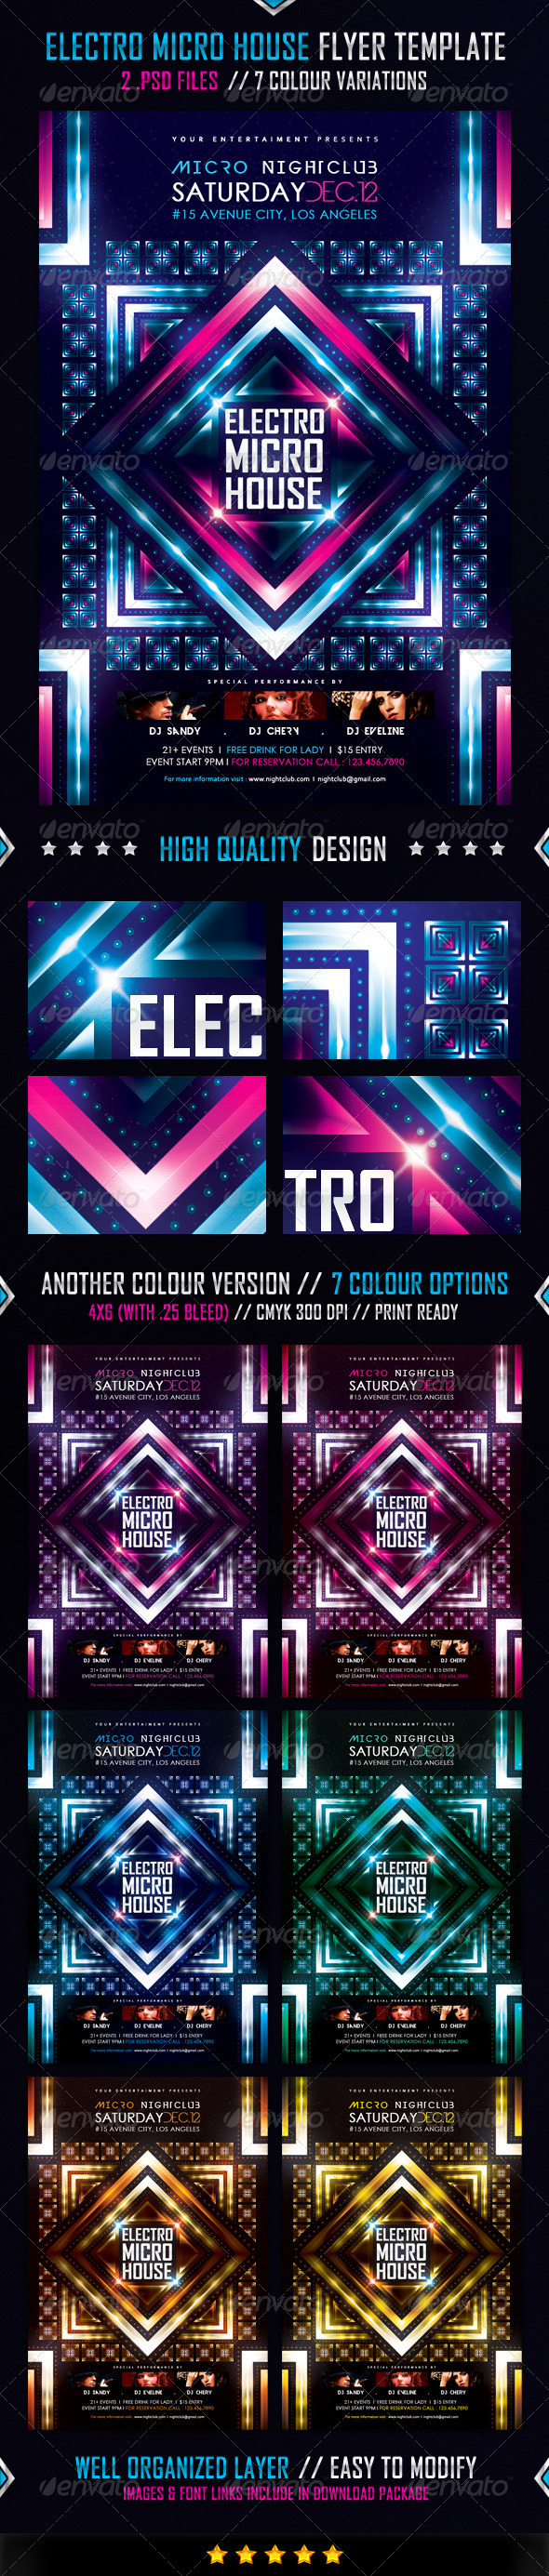 GraphicRiver Electro Micro House Flyer Template 4790645